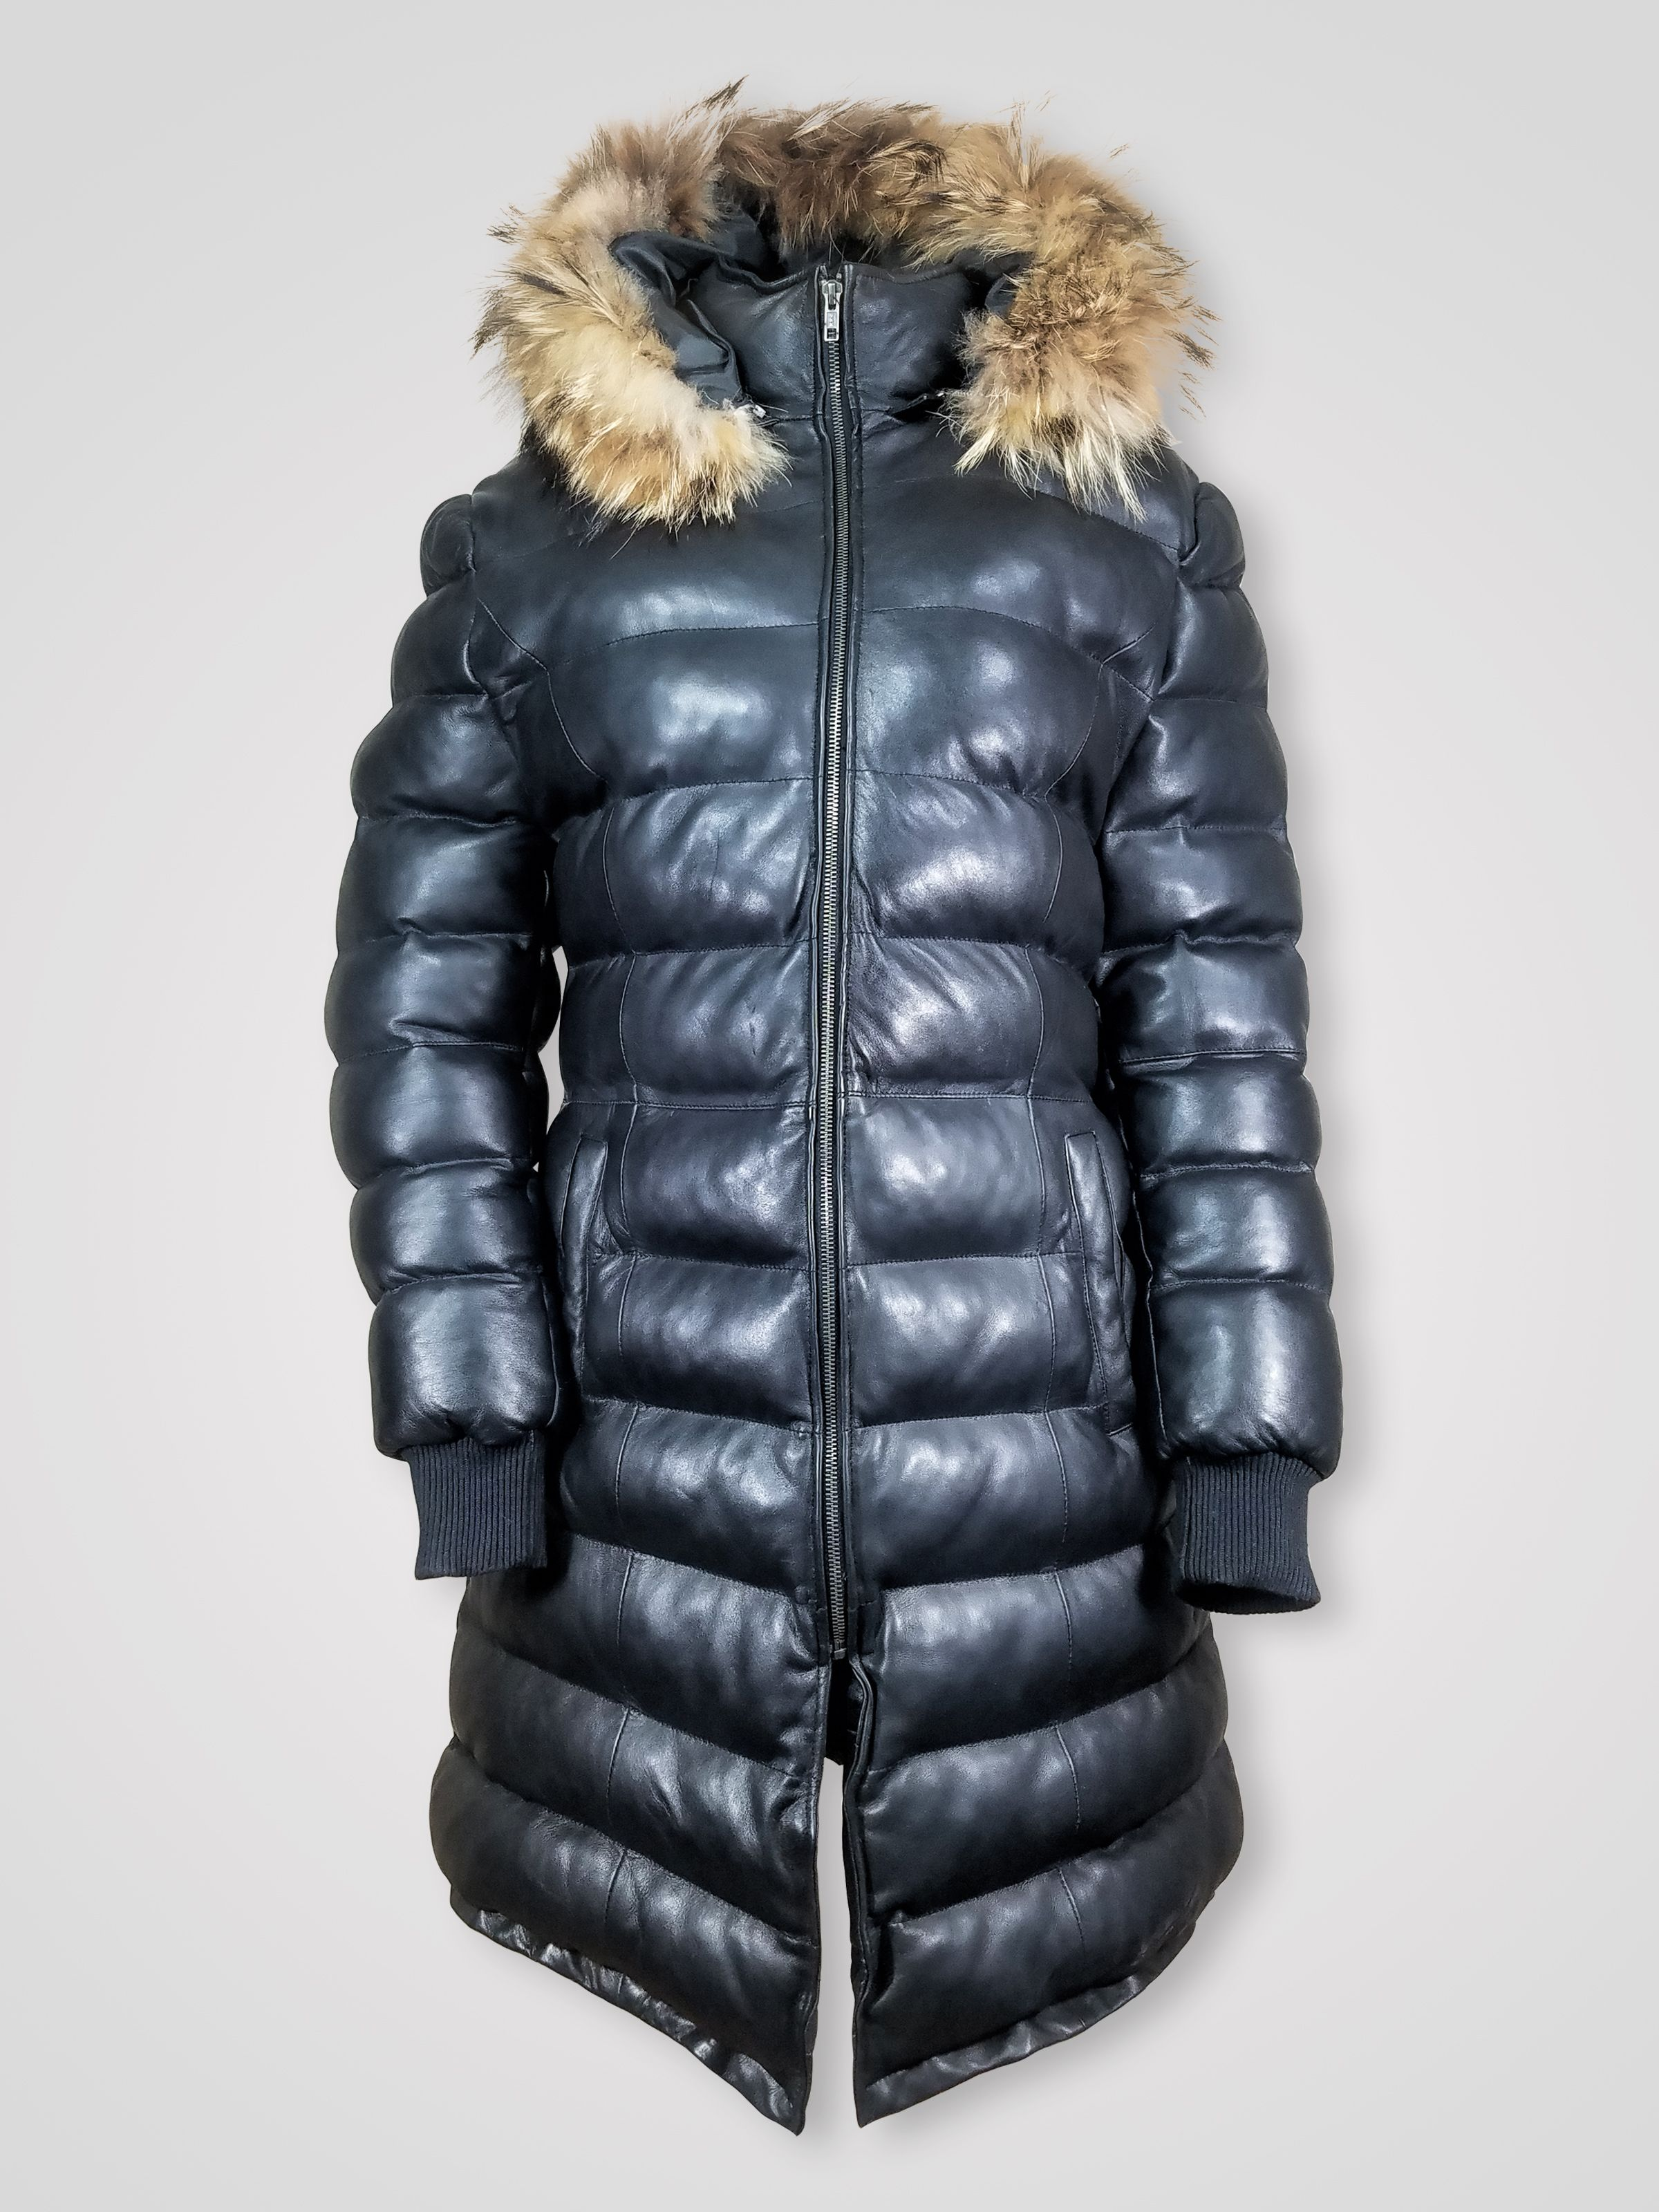 Women's long puffy bubble black leather jacket with hood